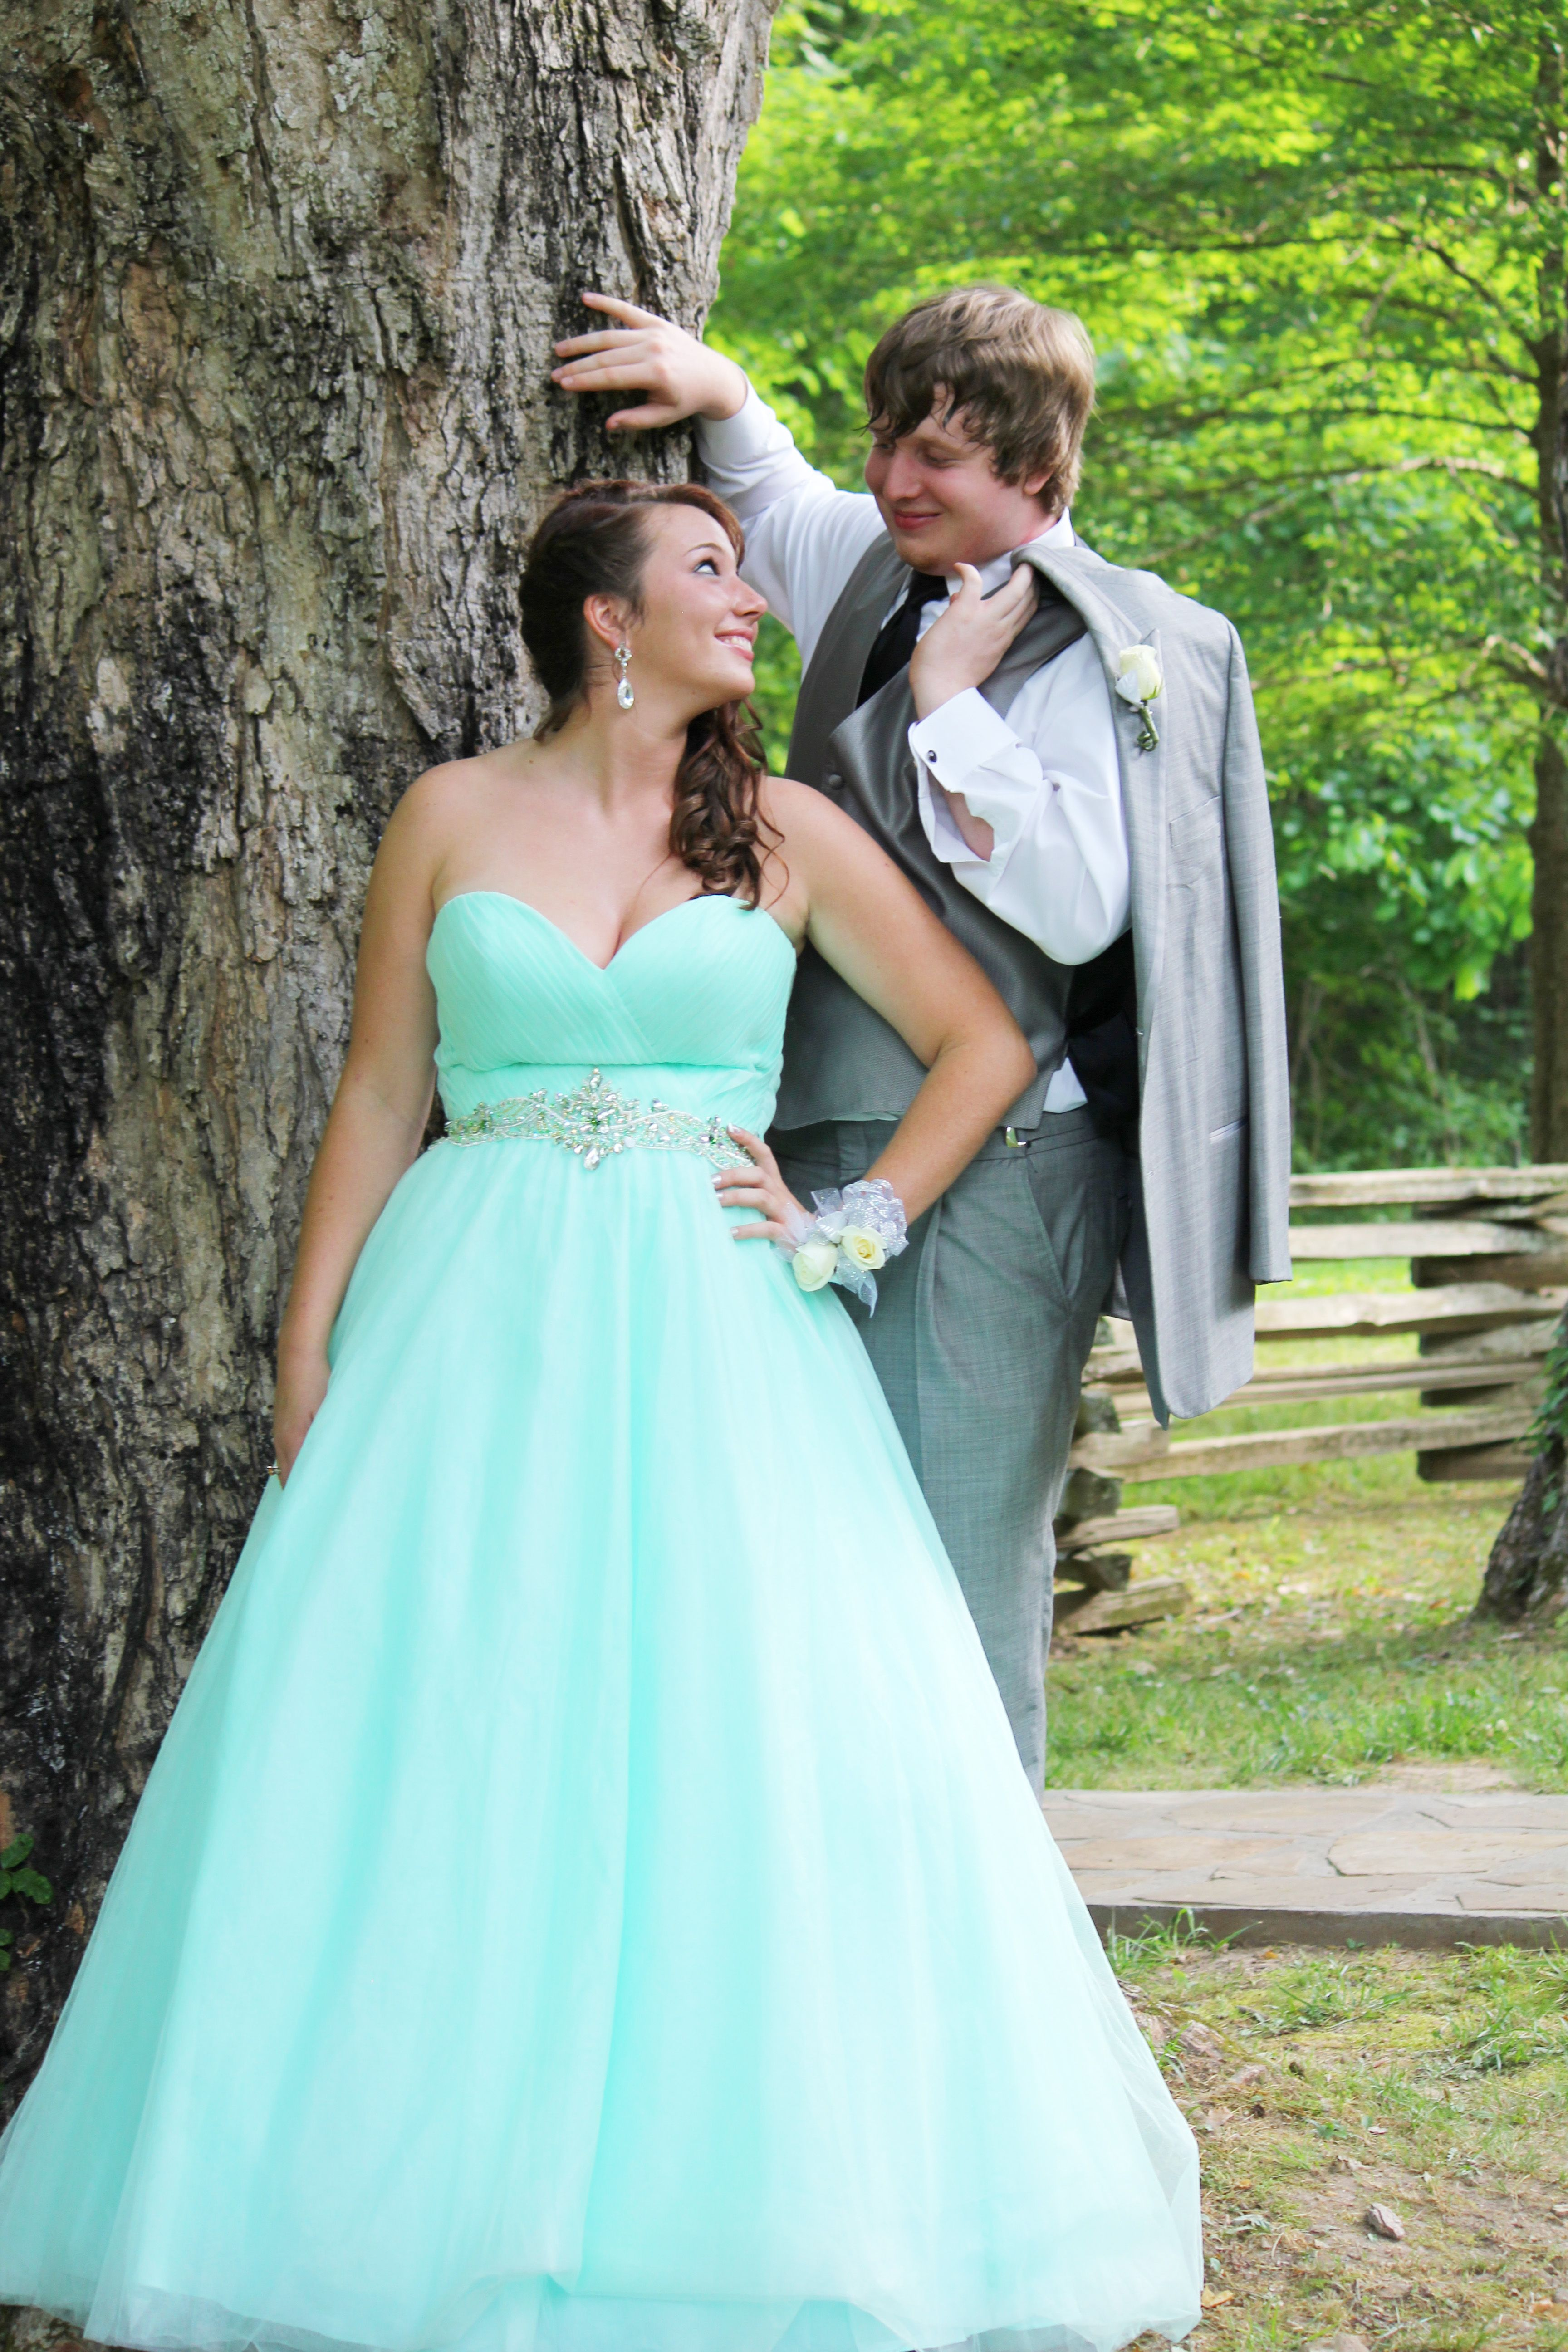 prom and couple pictures | Prom And Senior Picture Ideas ...